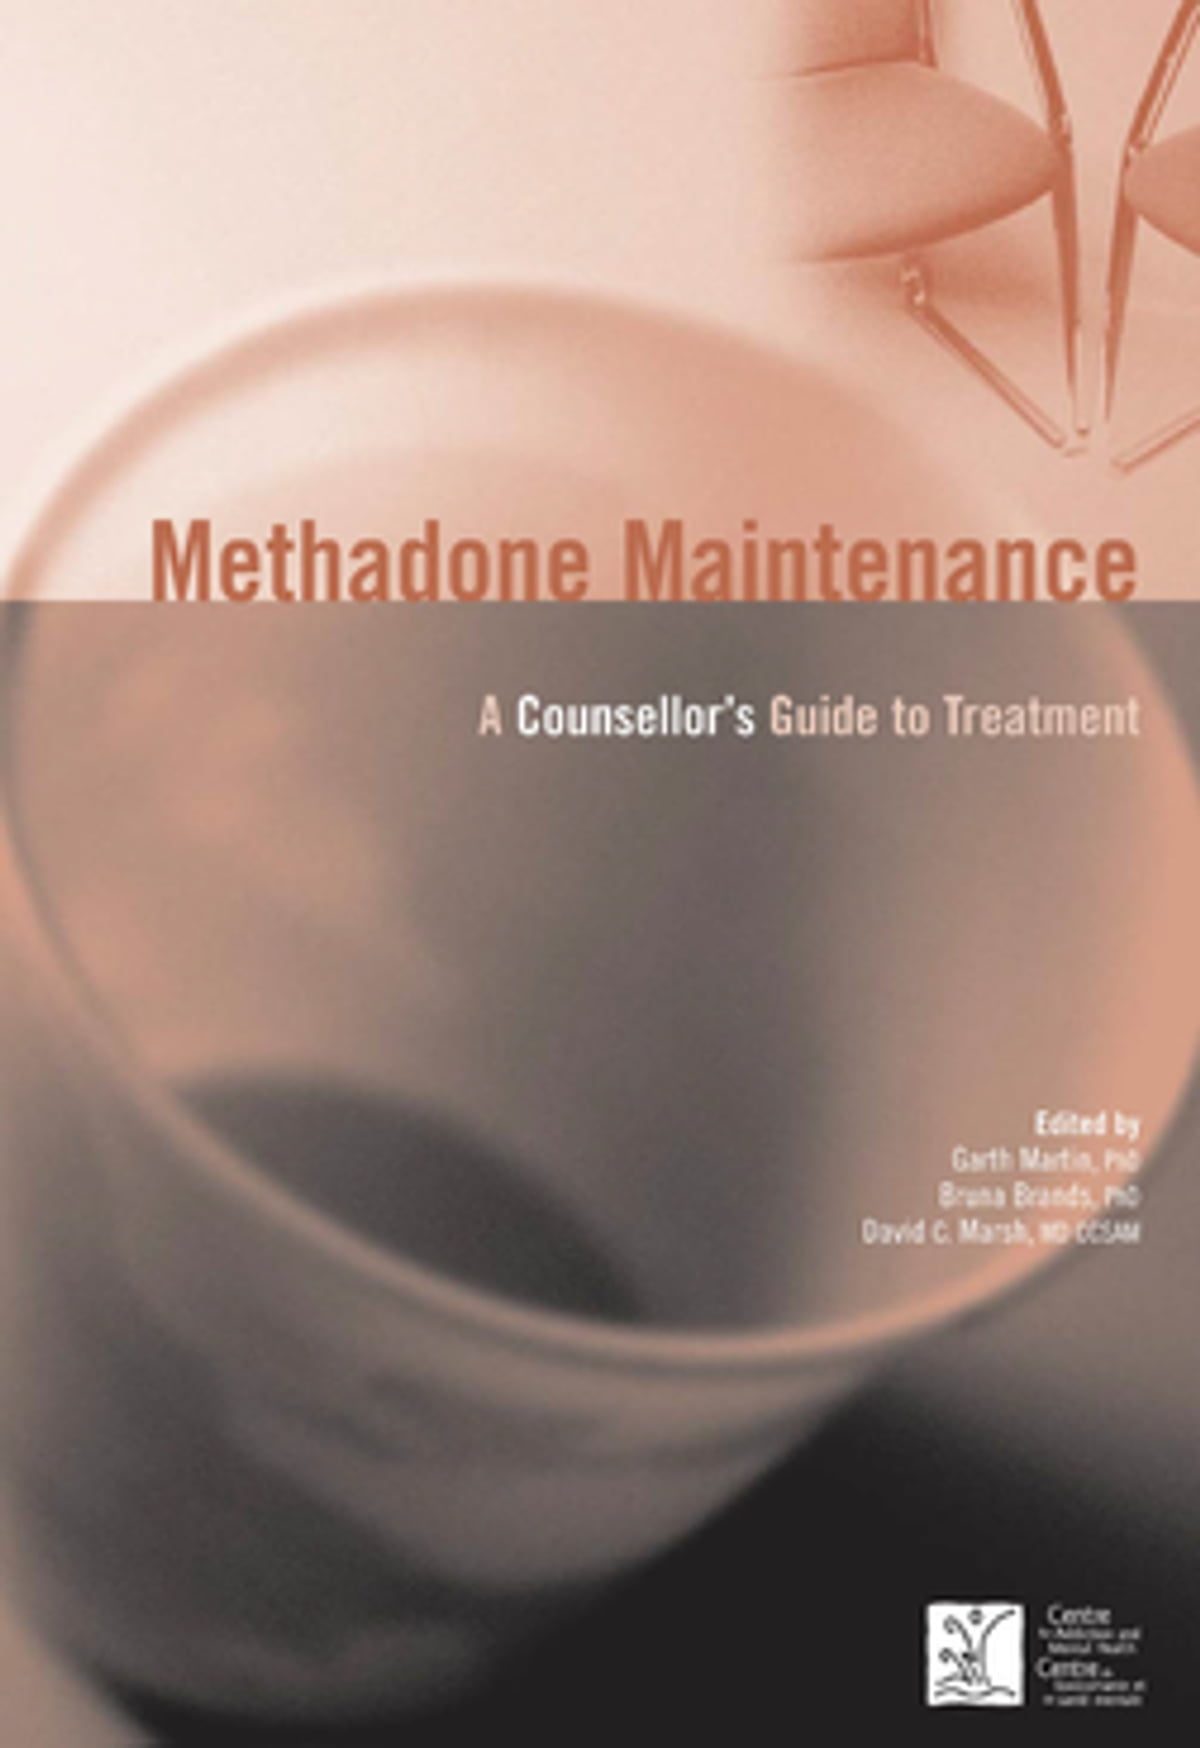 methadone maintenance treatment Methadone maintenance treatment is the use of methadone, administered over a prolonged period of time, as treatment for someone who is addicted to opioids such as heroin, where detoxification has been unsuccessful and/or admittance to a substance abuse treatment facility requires complete abstinence.